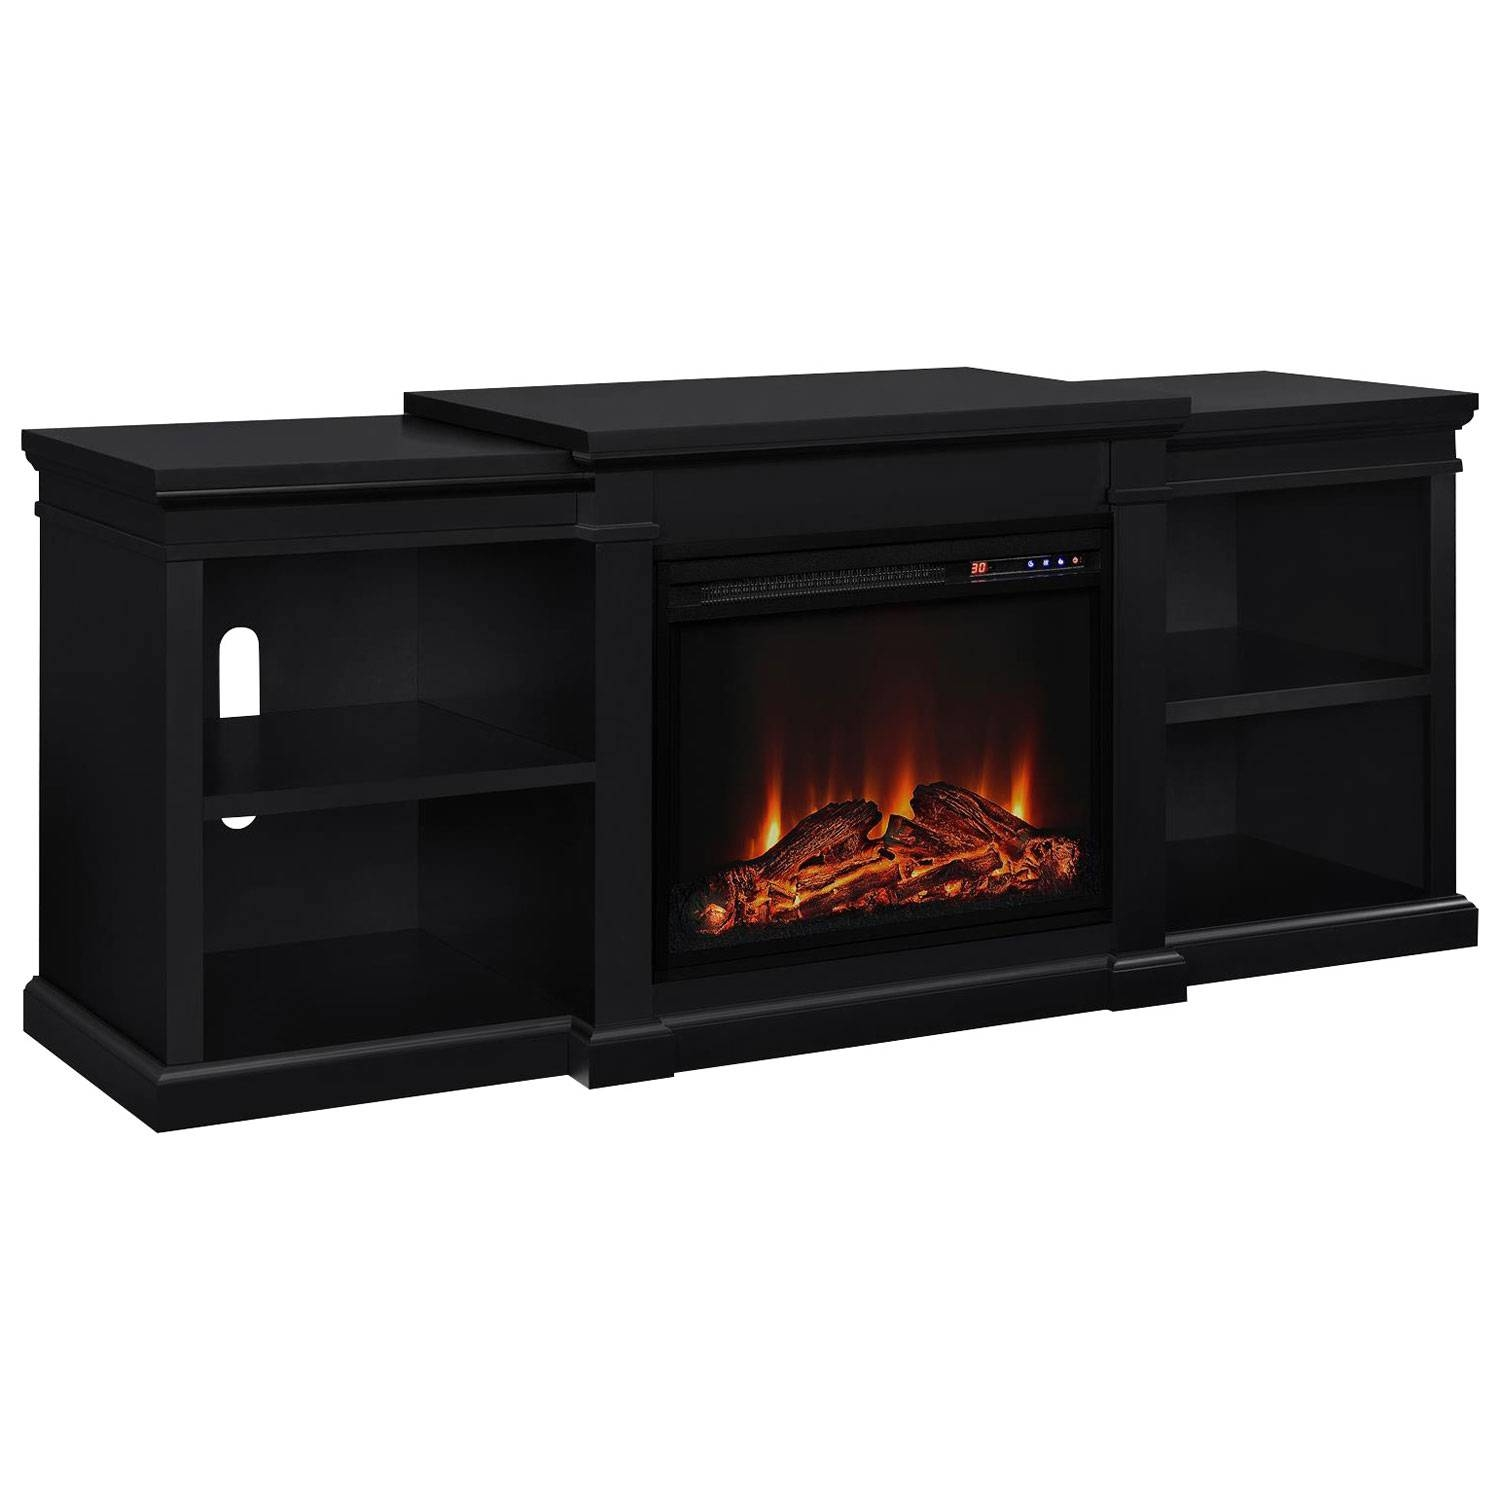 Shop Tv Stands, Fireplace & Corner Tv Stands - Best Buy Canada with regard to Tv Stands 38 Inches Wide (Image 3 of 15)